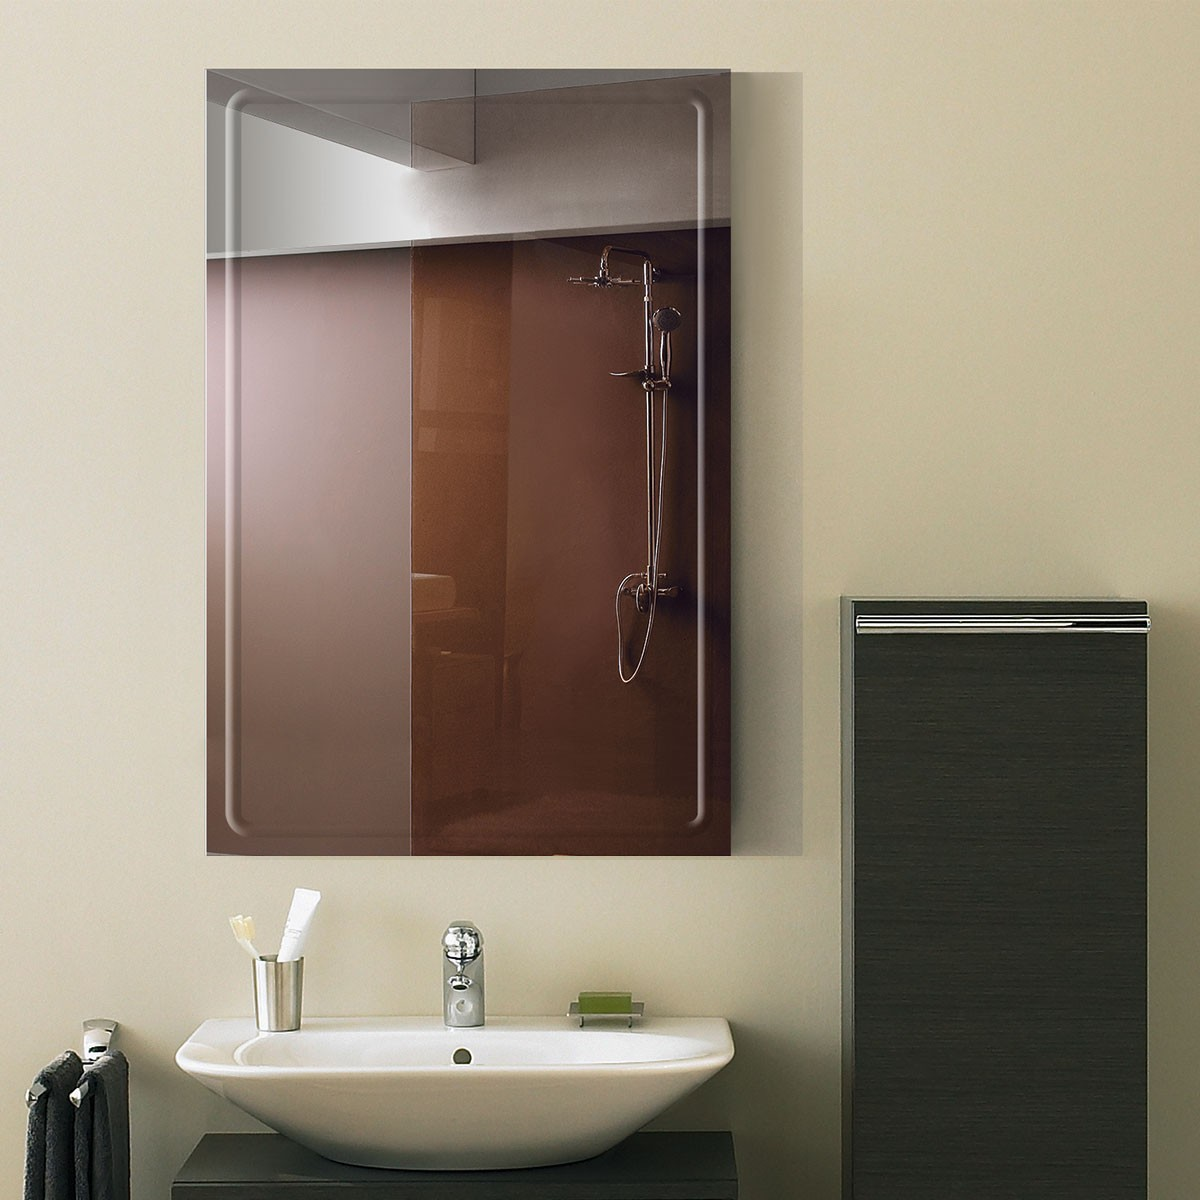 24 x 36 In. Wall-mounted Rectangle Bathroom Mirror (DK-OD-B048A)